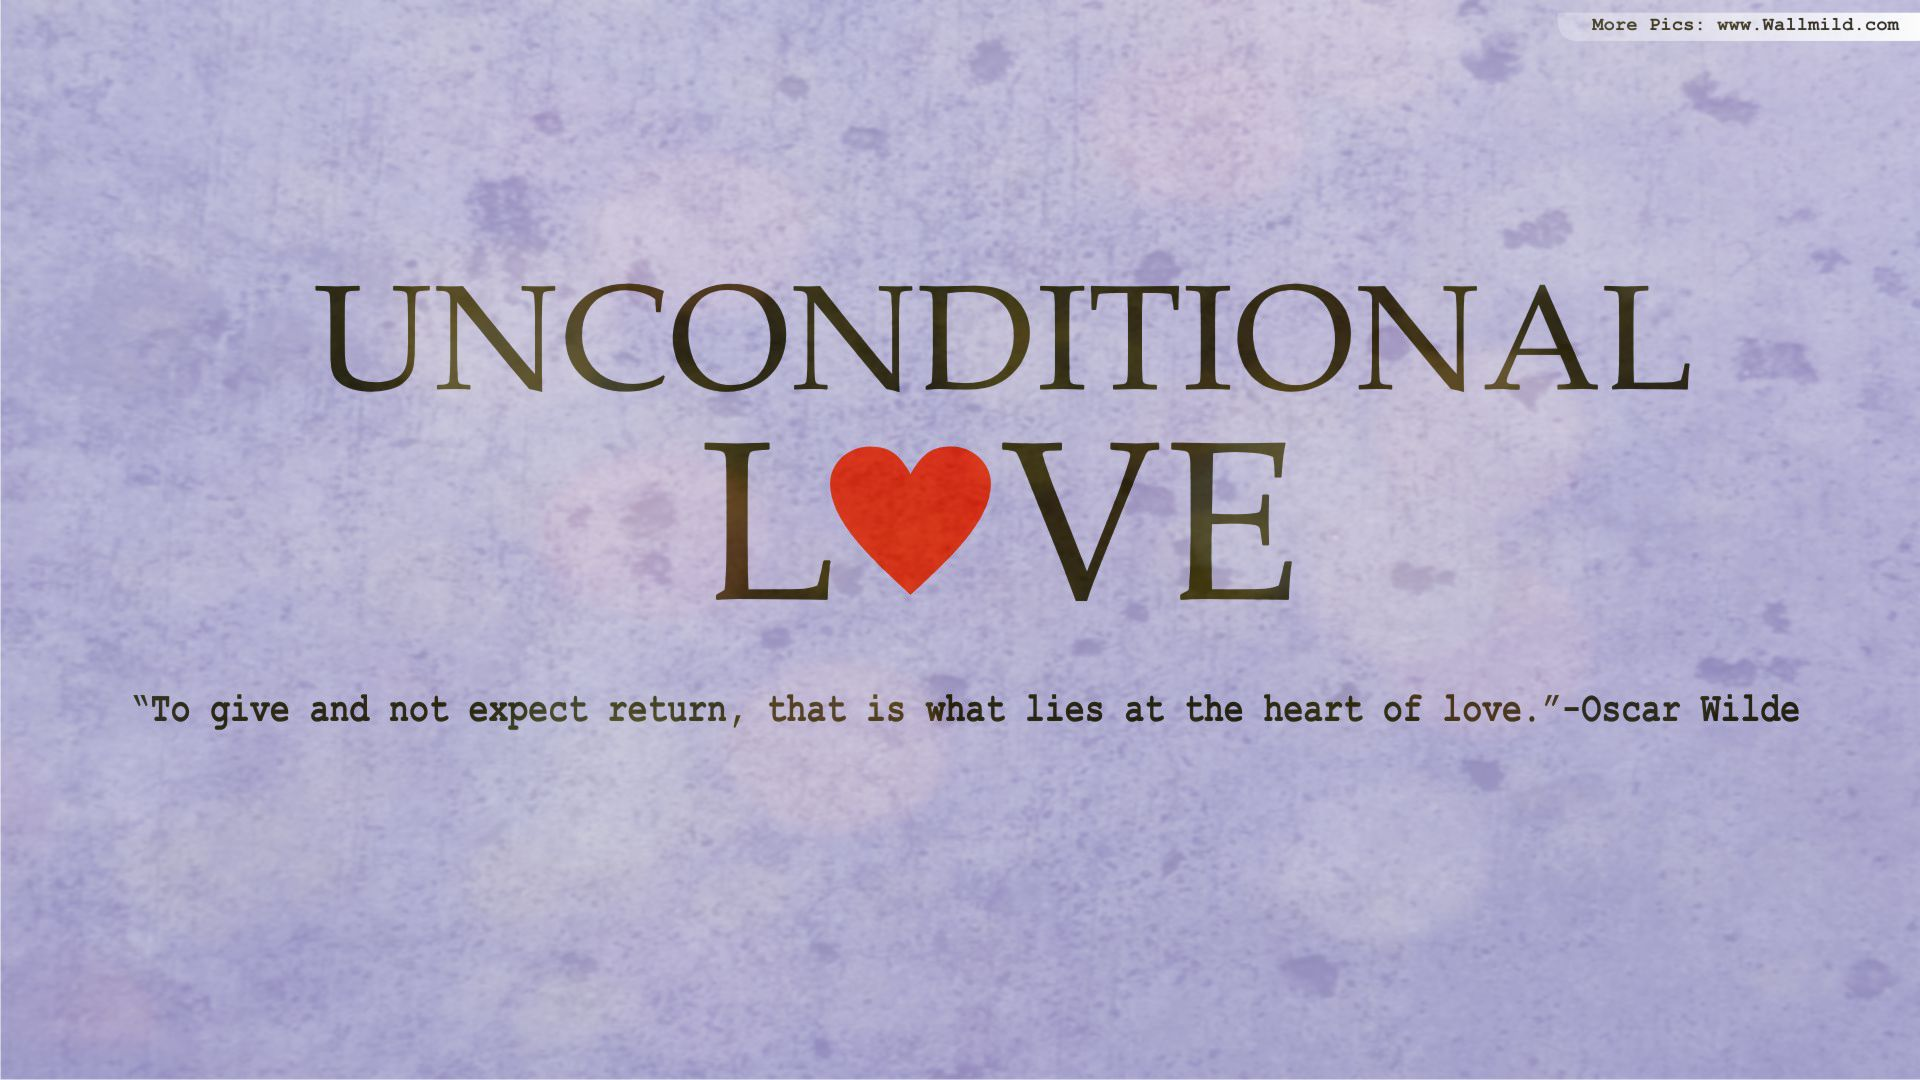 UNCONDITIONAL LOVE QUOTES IMAGES image quotes at BuzzQuotes.com